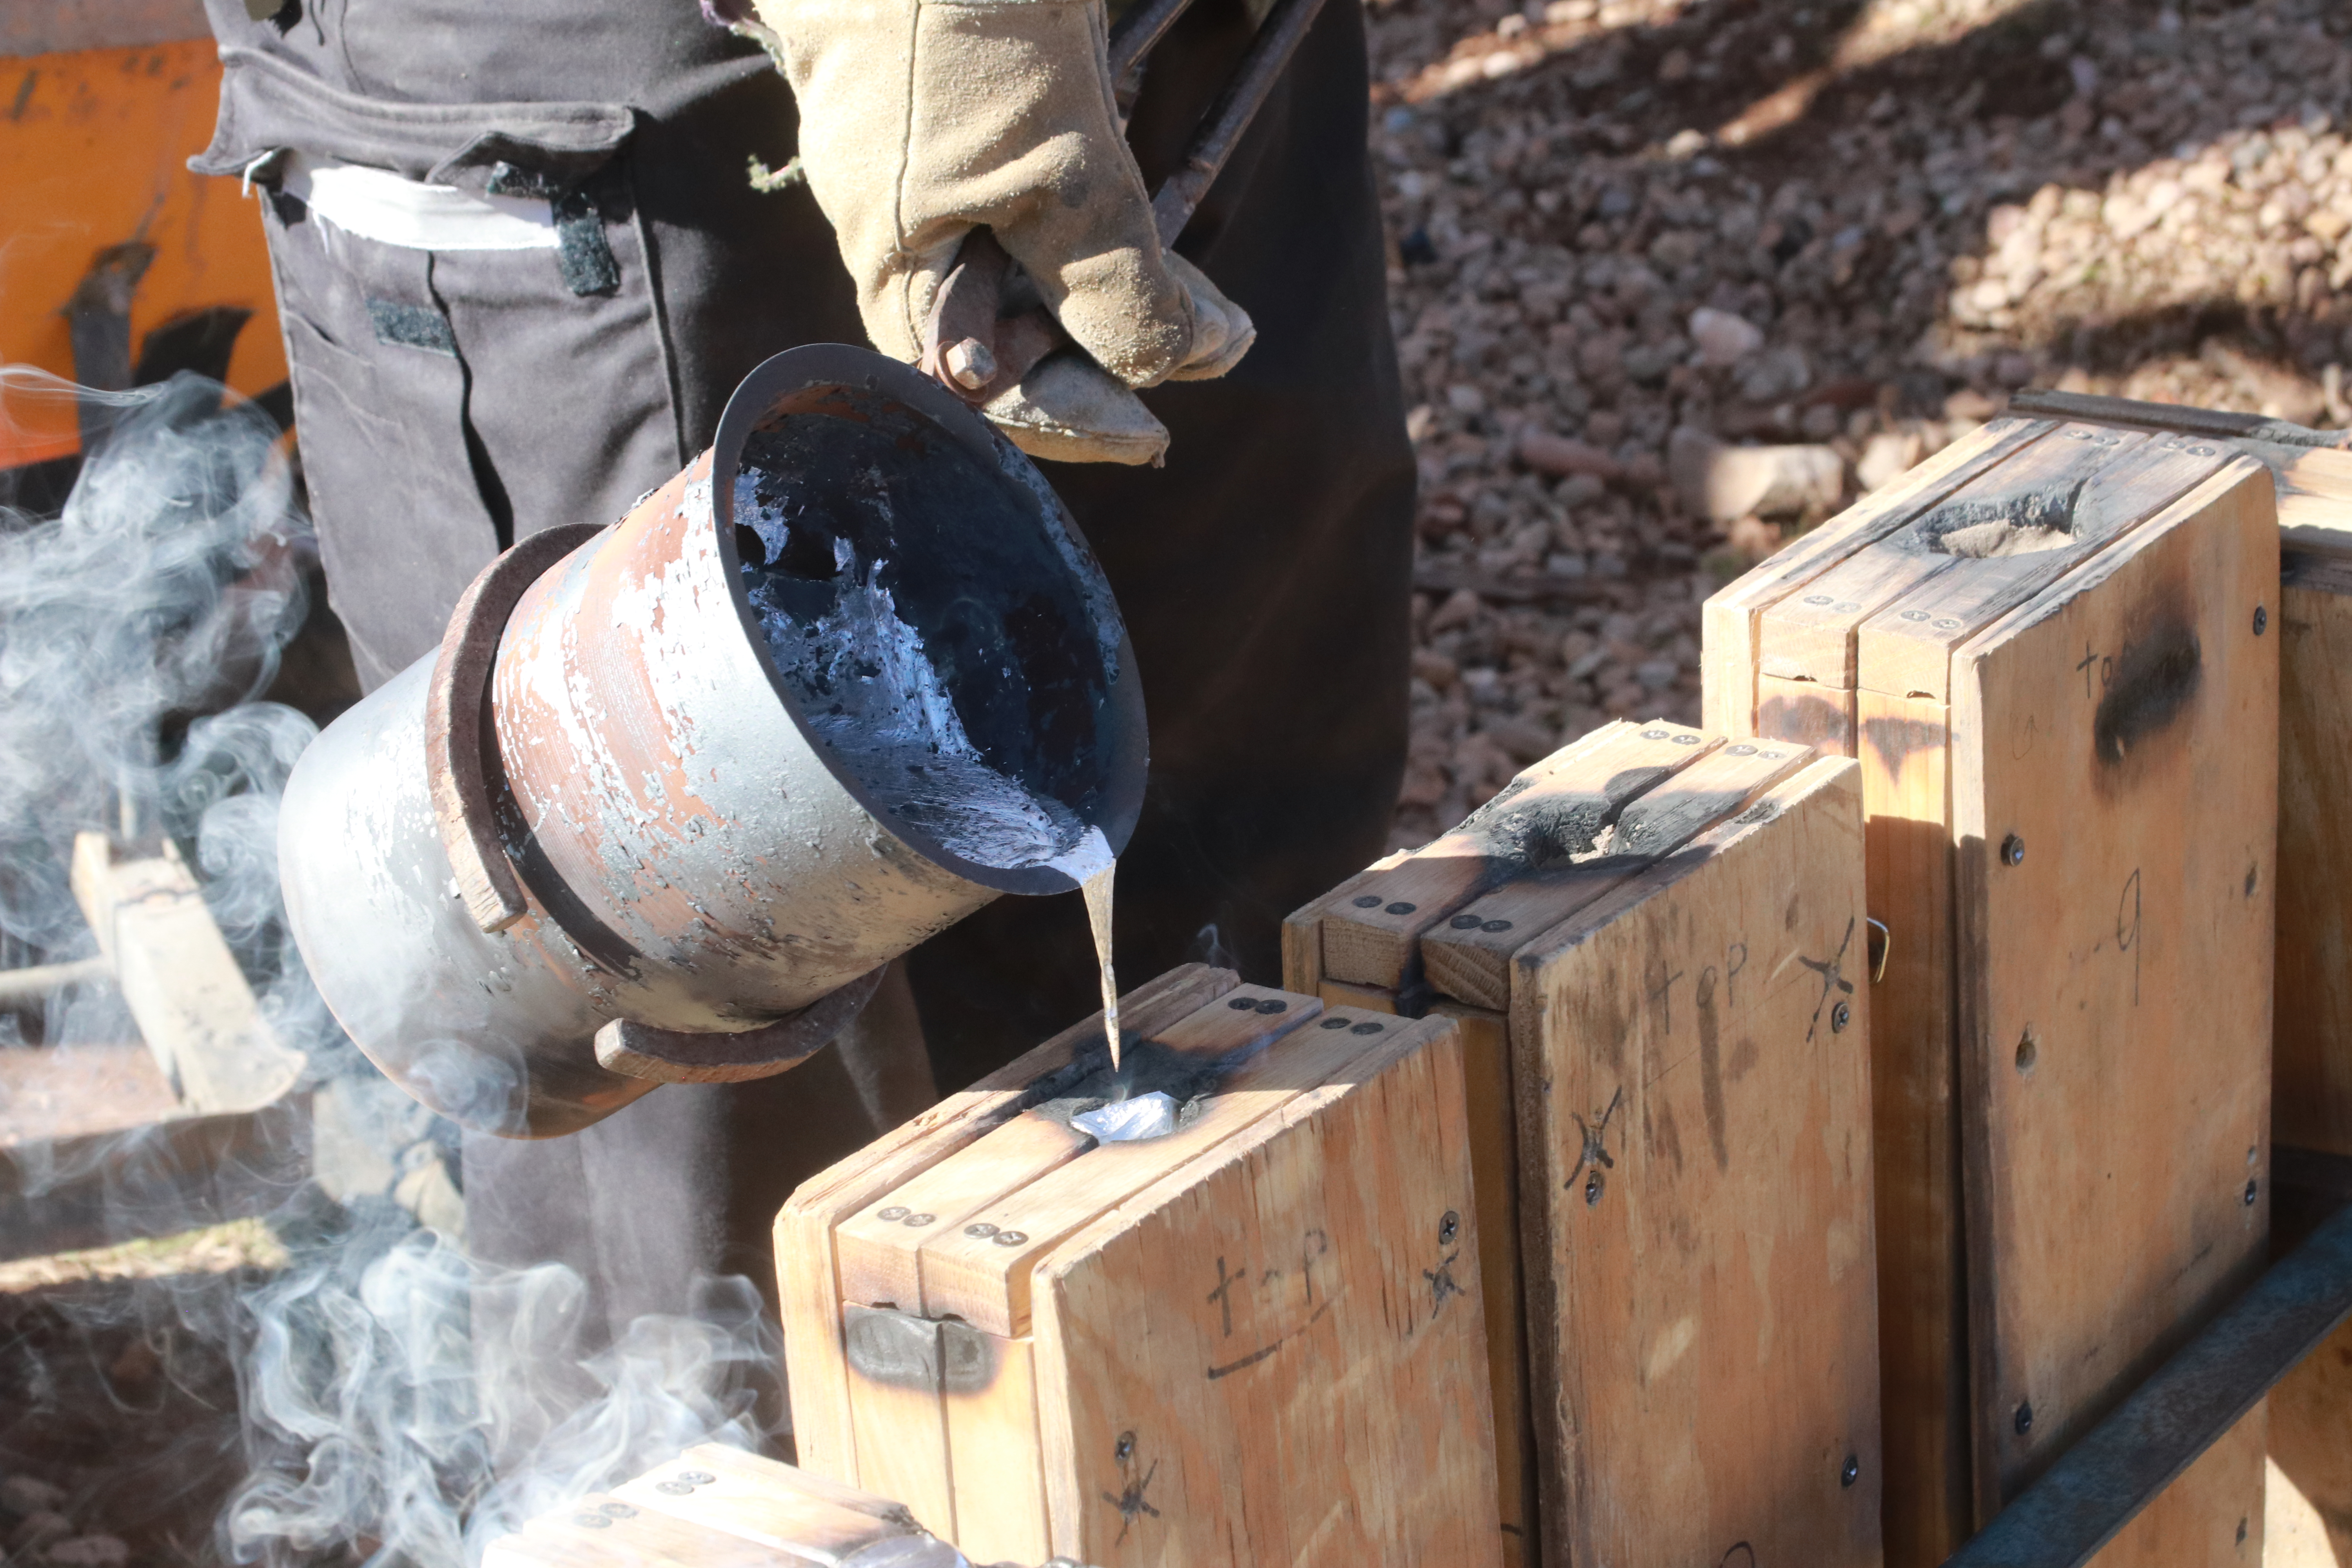 Local students make weapons of molten metal, thanks to help of